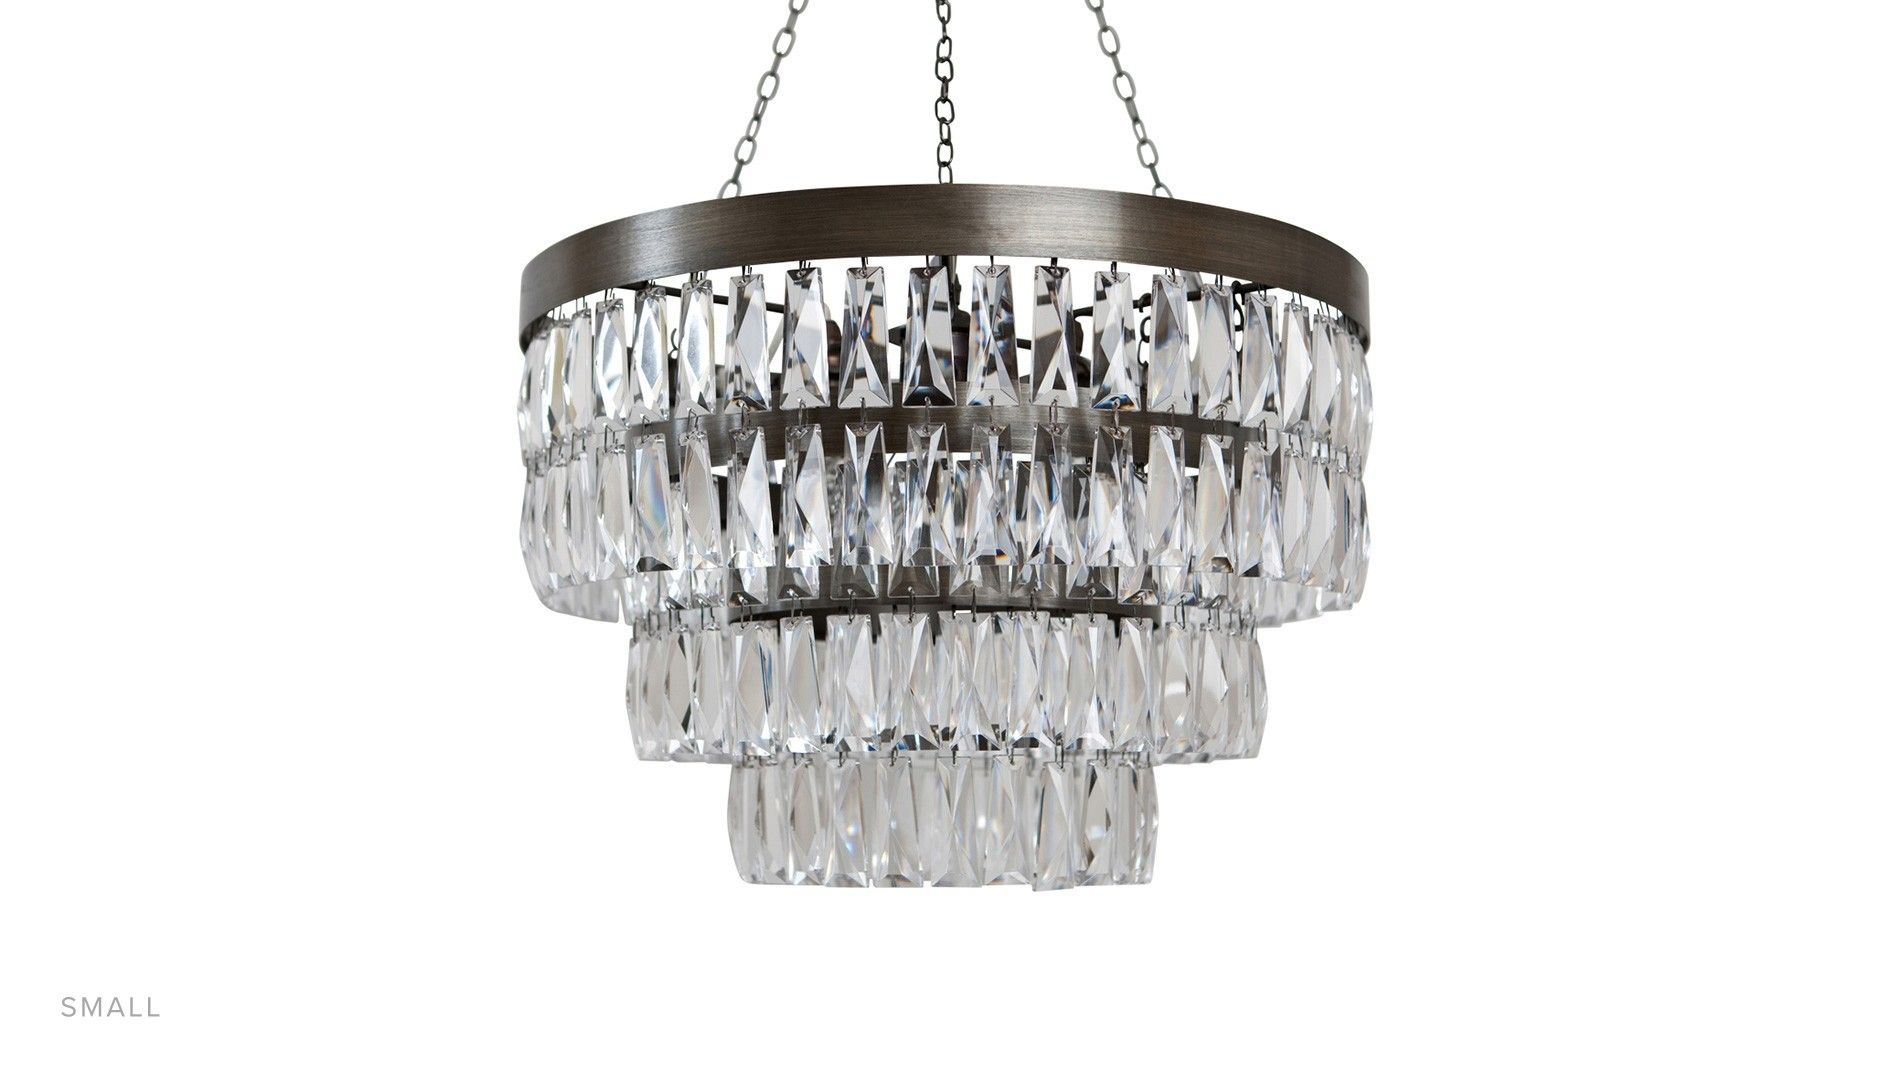 BedroomLinear Chandelier Beaded Small Crystal Modern Chandeliers For Living Room Chain